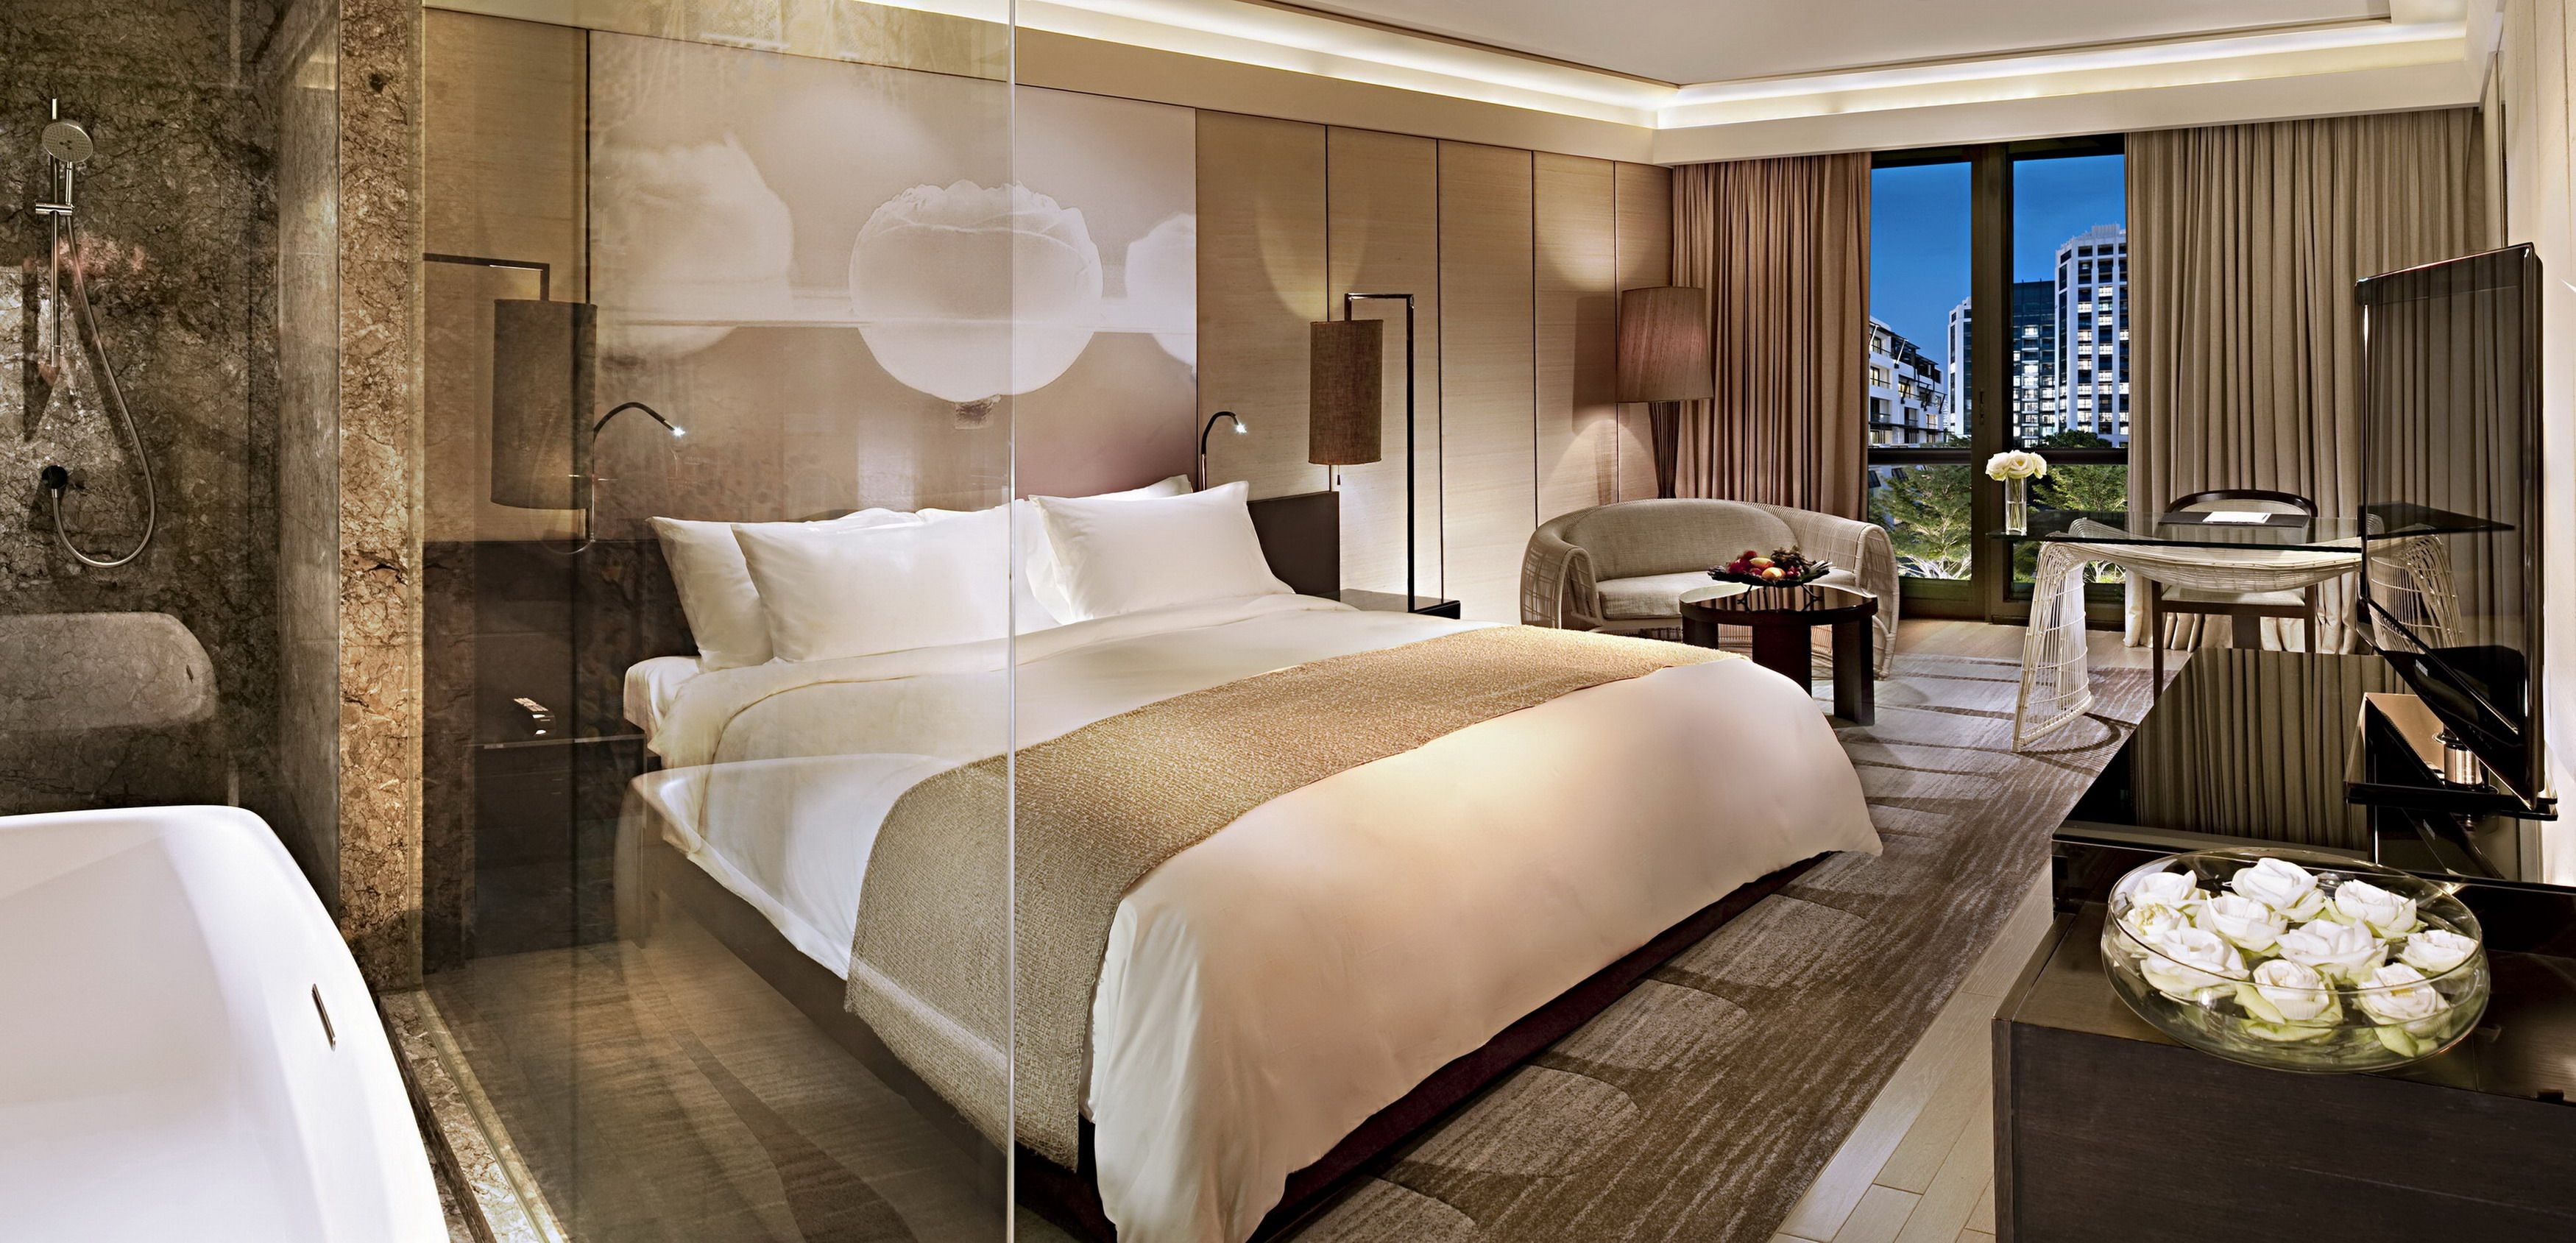 Luxury hotel rooms pictures new luxury kempinski hotel for Great small luxury hotels